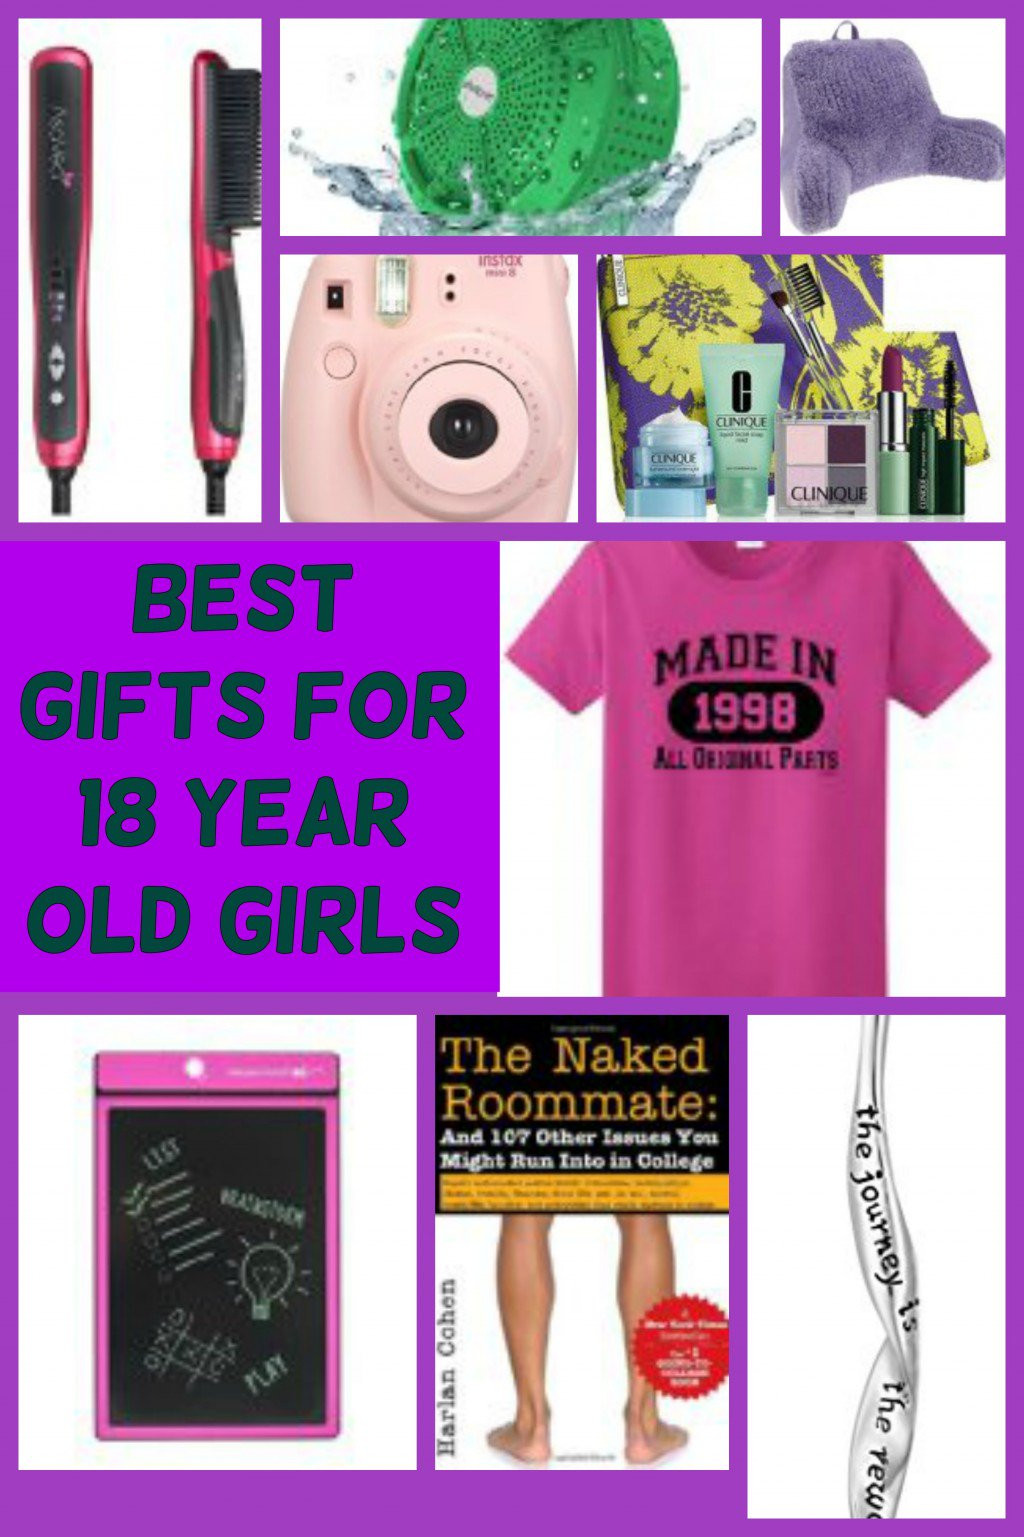 Best ideas about Gift Ideas For 18 Year Old Boy . Save or Pin Popular Birthday and Christmas Gift Ideas for 18 Year Old Now.